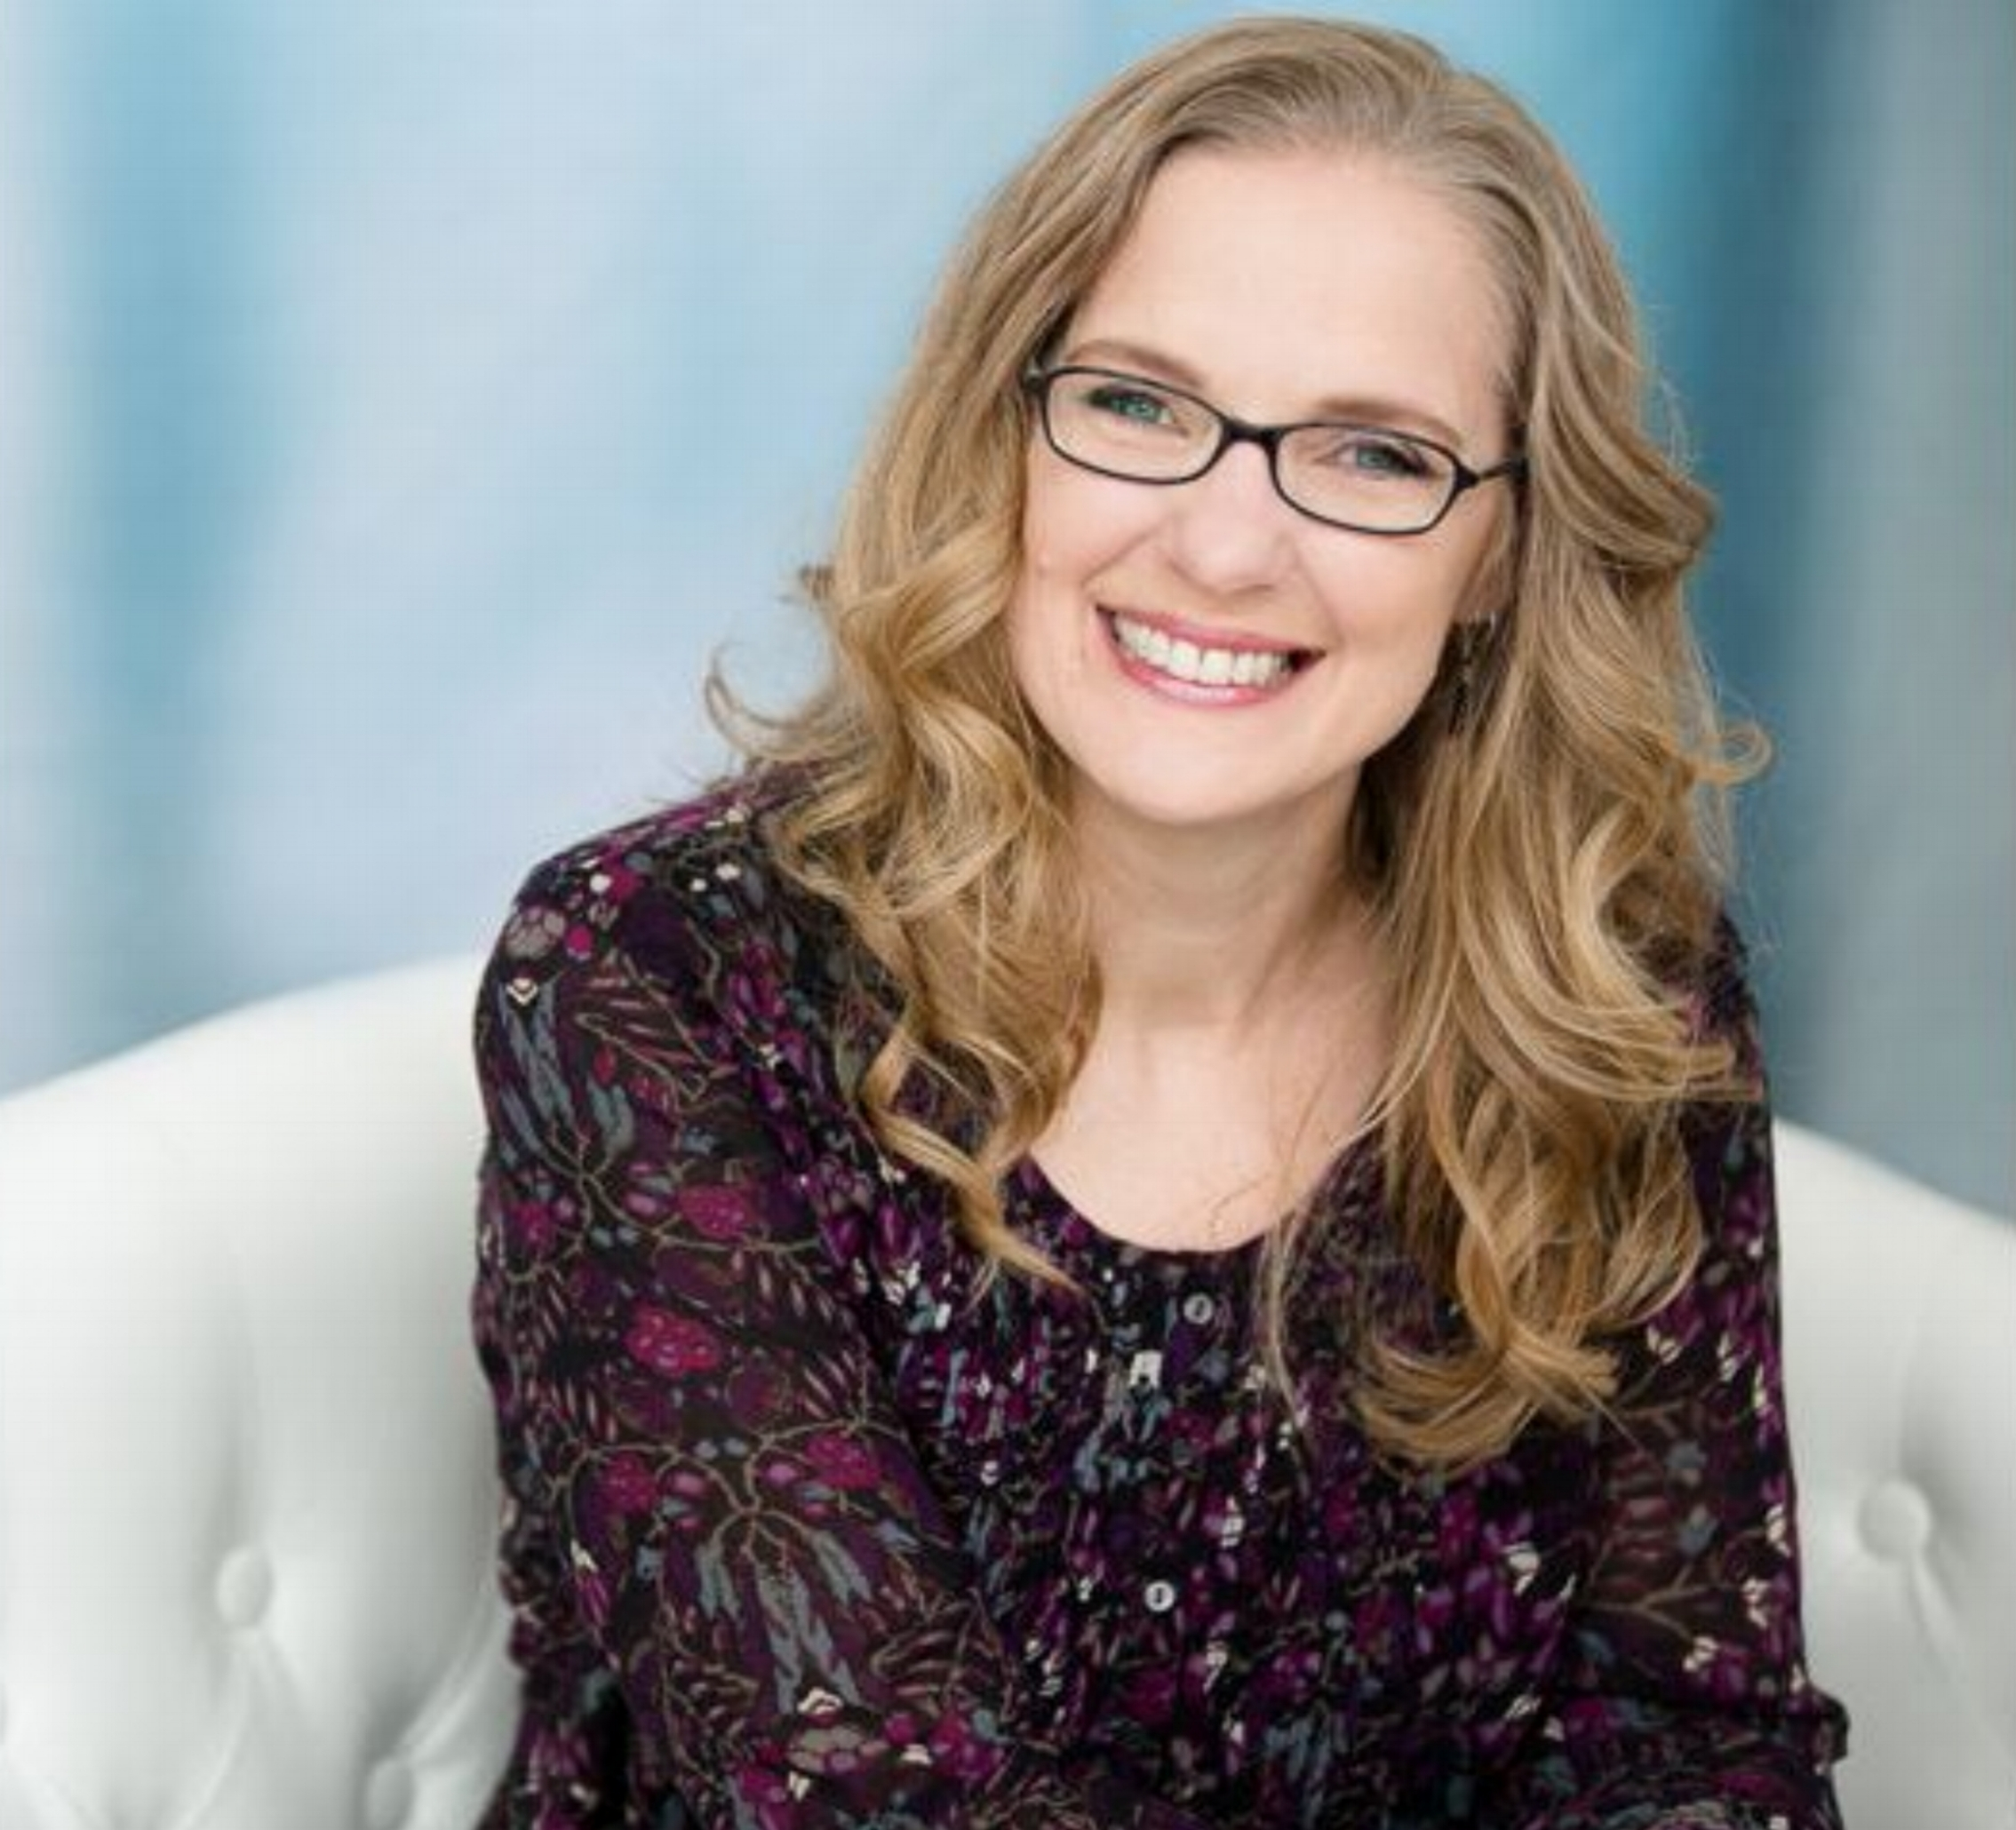 S  ara Weber, LPC-S, CEDS-S  Founder & Director  Eating Disorder Specialist and Supervisor. Offering expertise in anxiety, mindfulness, eating concerns and professional issues. Founder of Discovery Counseling Austin.  512-607-9360 xt 20  Email Sara     Not accepting new Clients at this time